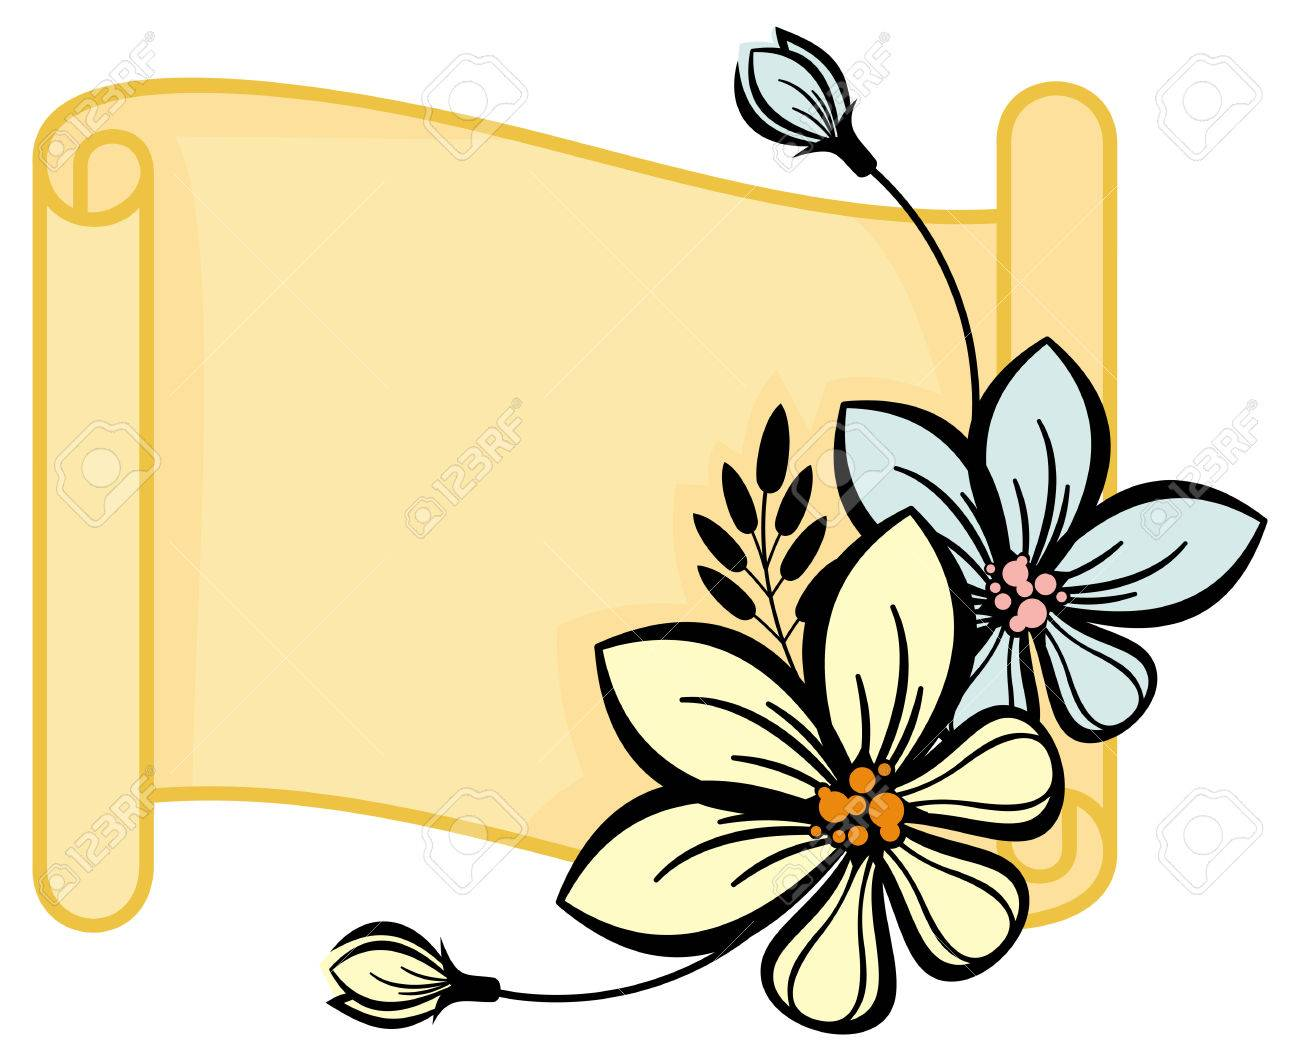 Horizontal paper scroll with flowers.